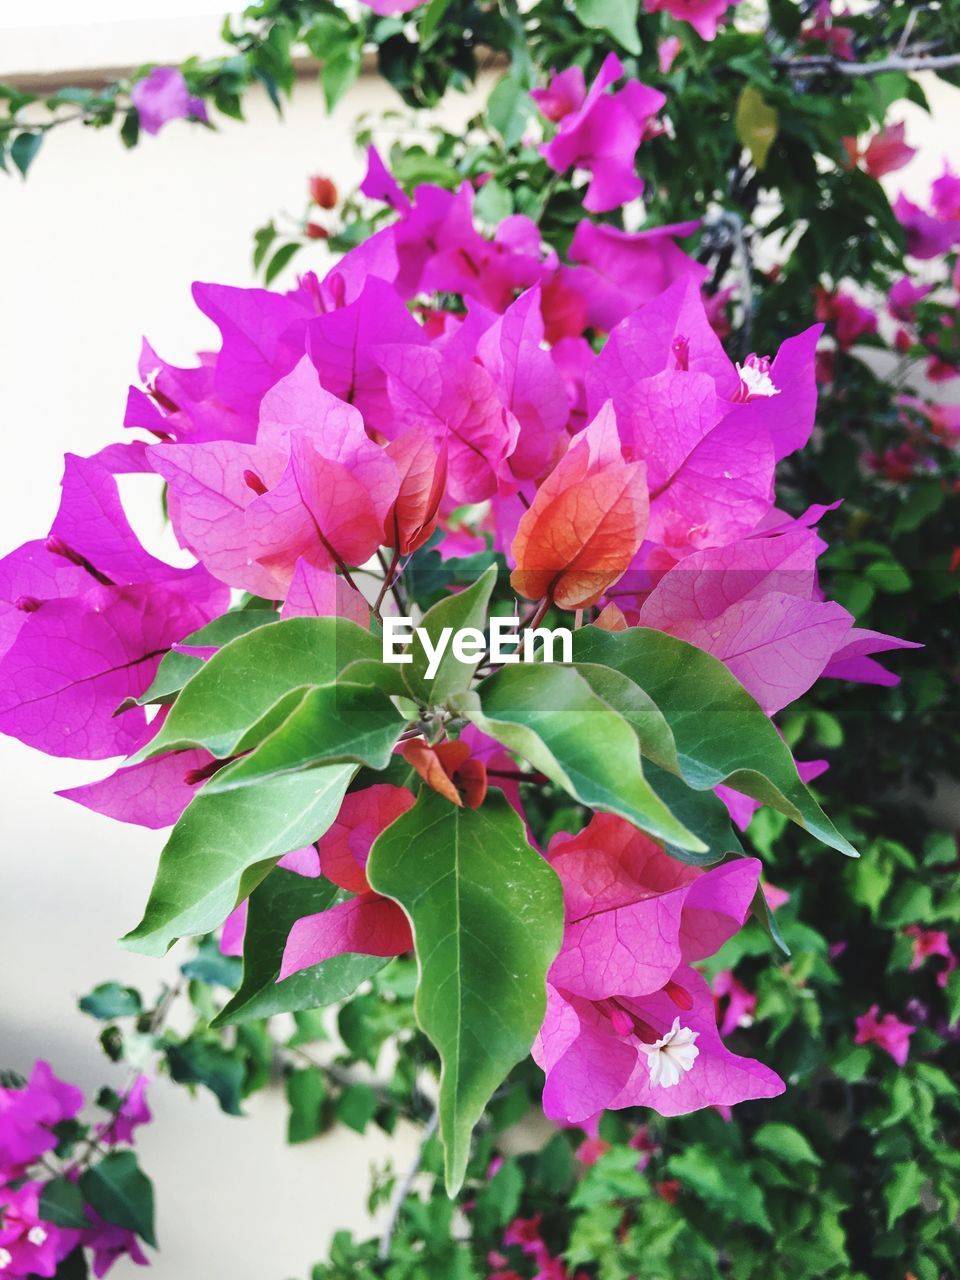 flower, growth, nature, leaf, plant, beauty in nature, petal, fragility, no people, blooming, freshness, bougainvillea, outdoors, close-up, day, flower head